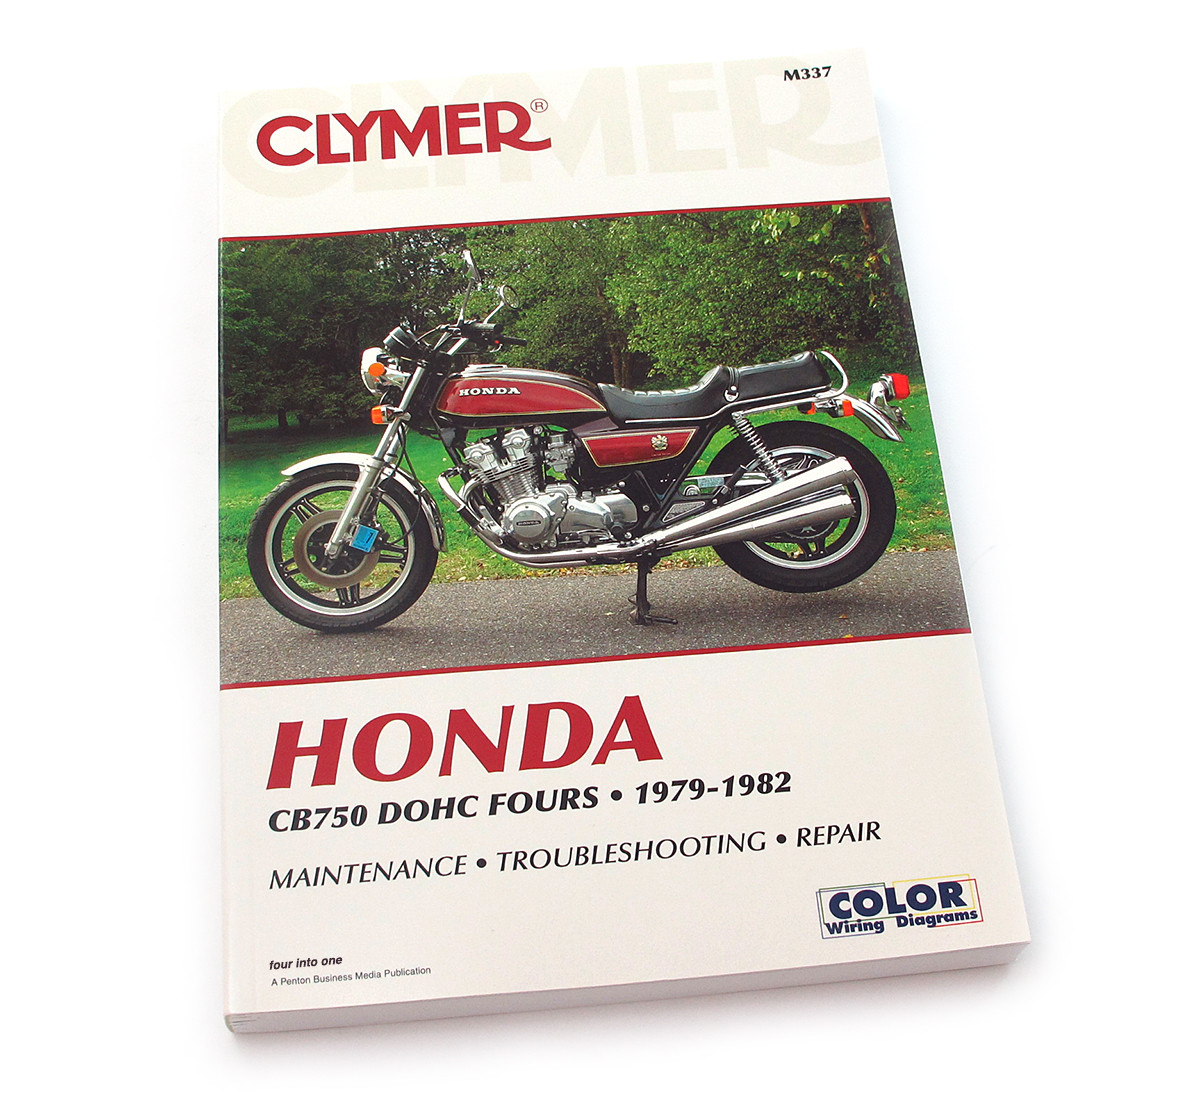 small resolution of clymer manual honda cb750 dohc fours 1979 1982 1980 cb750 wiring diagram image 1